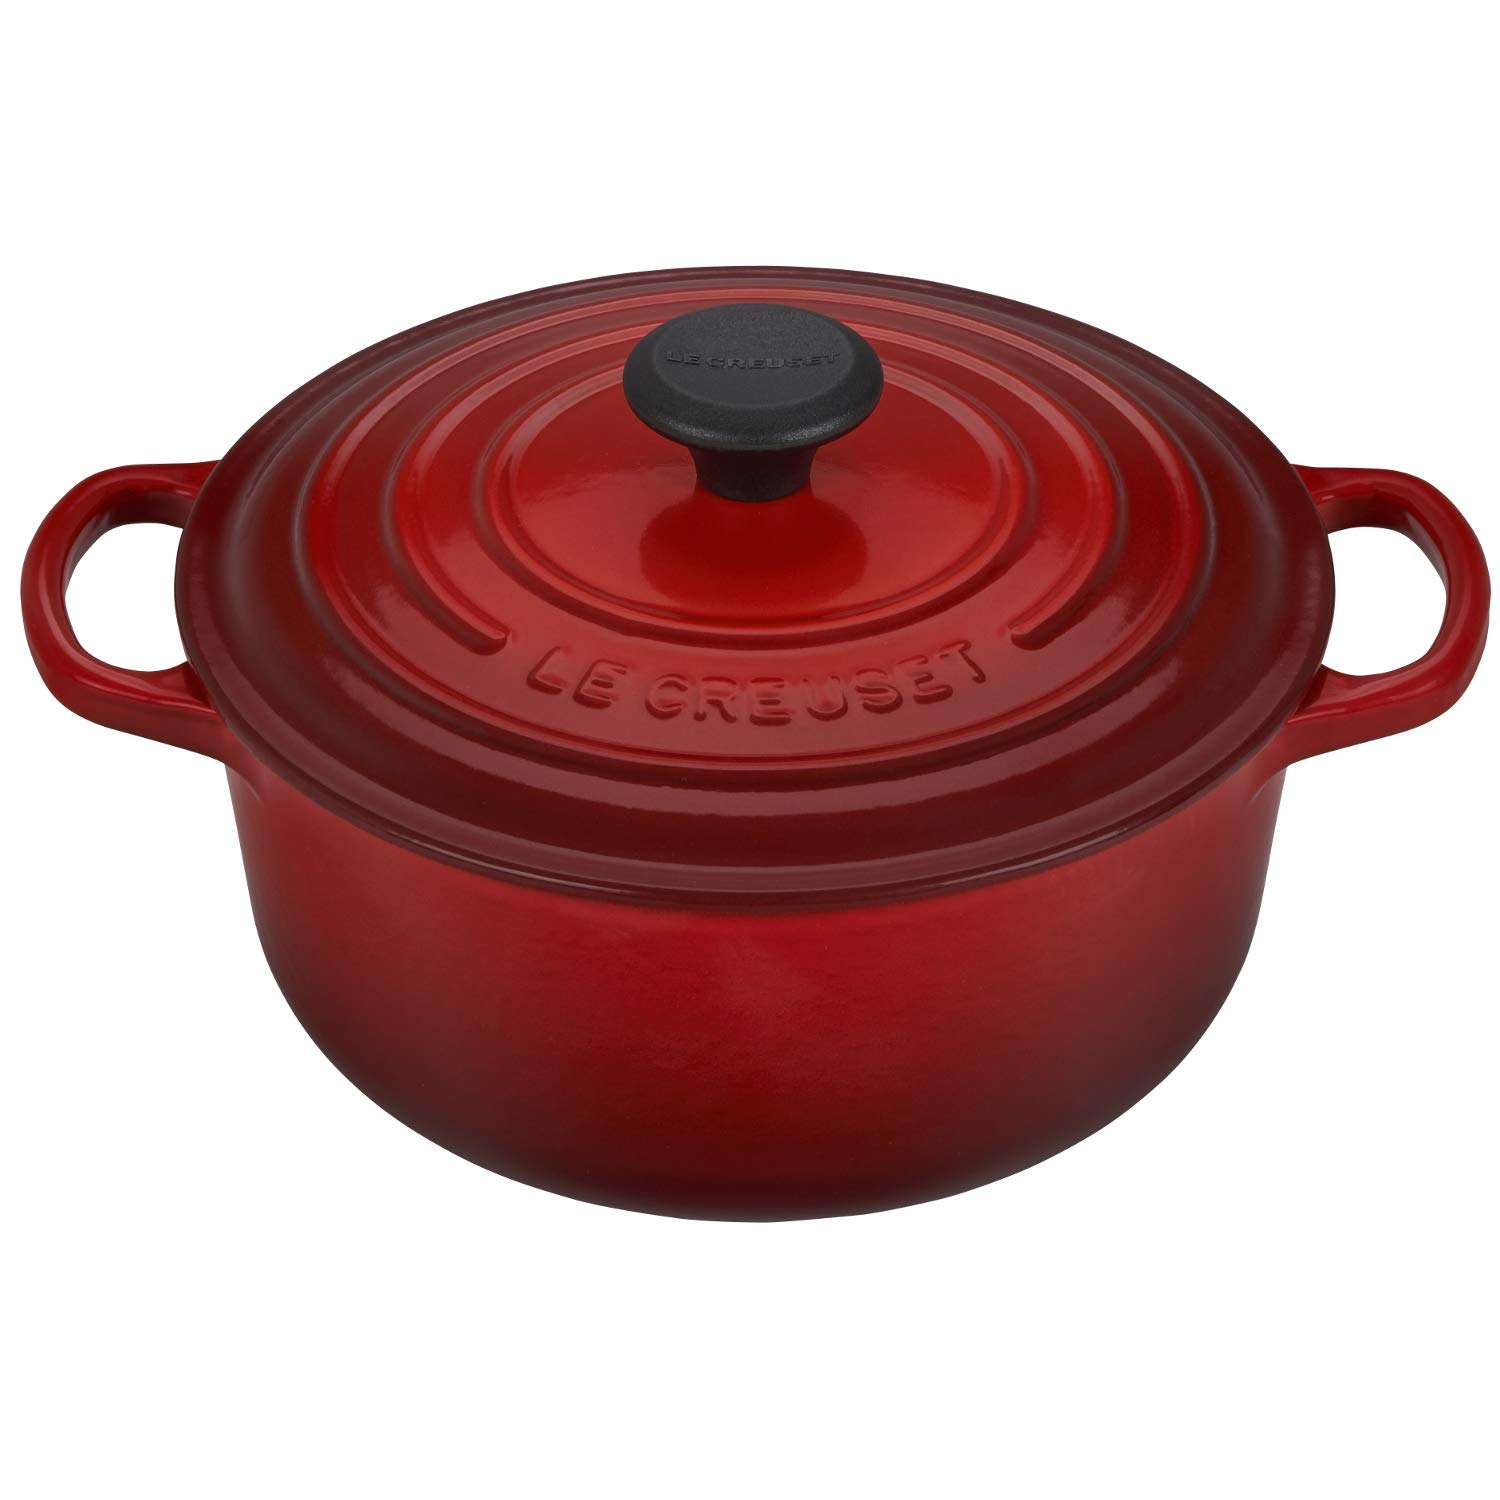 Le Creuset of America LS2501-2067 Enameled Dutch Oven 2.75 qt Cerise